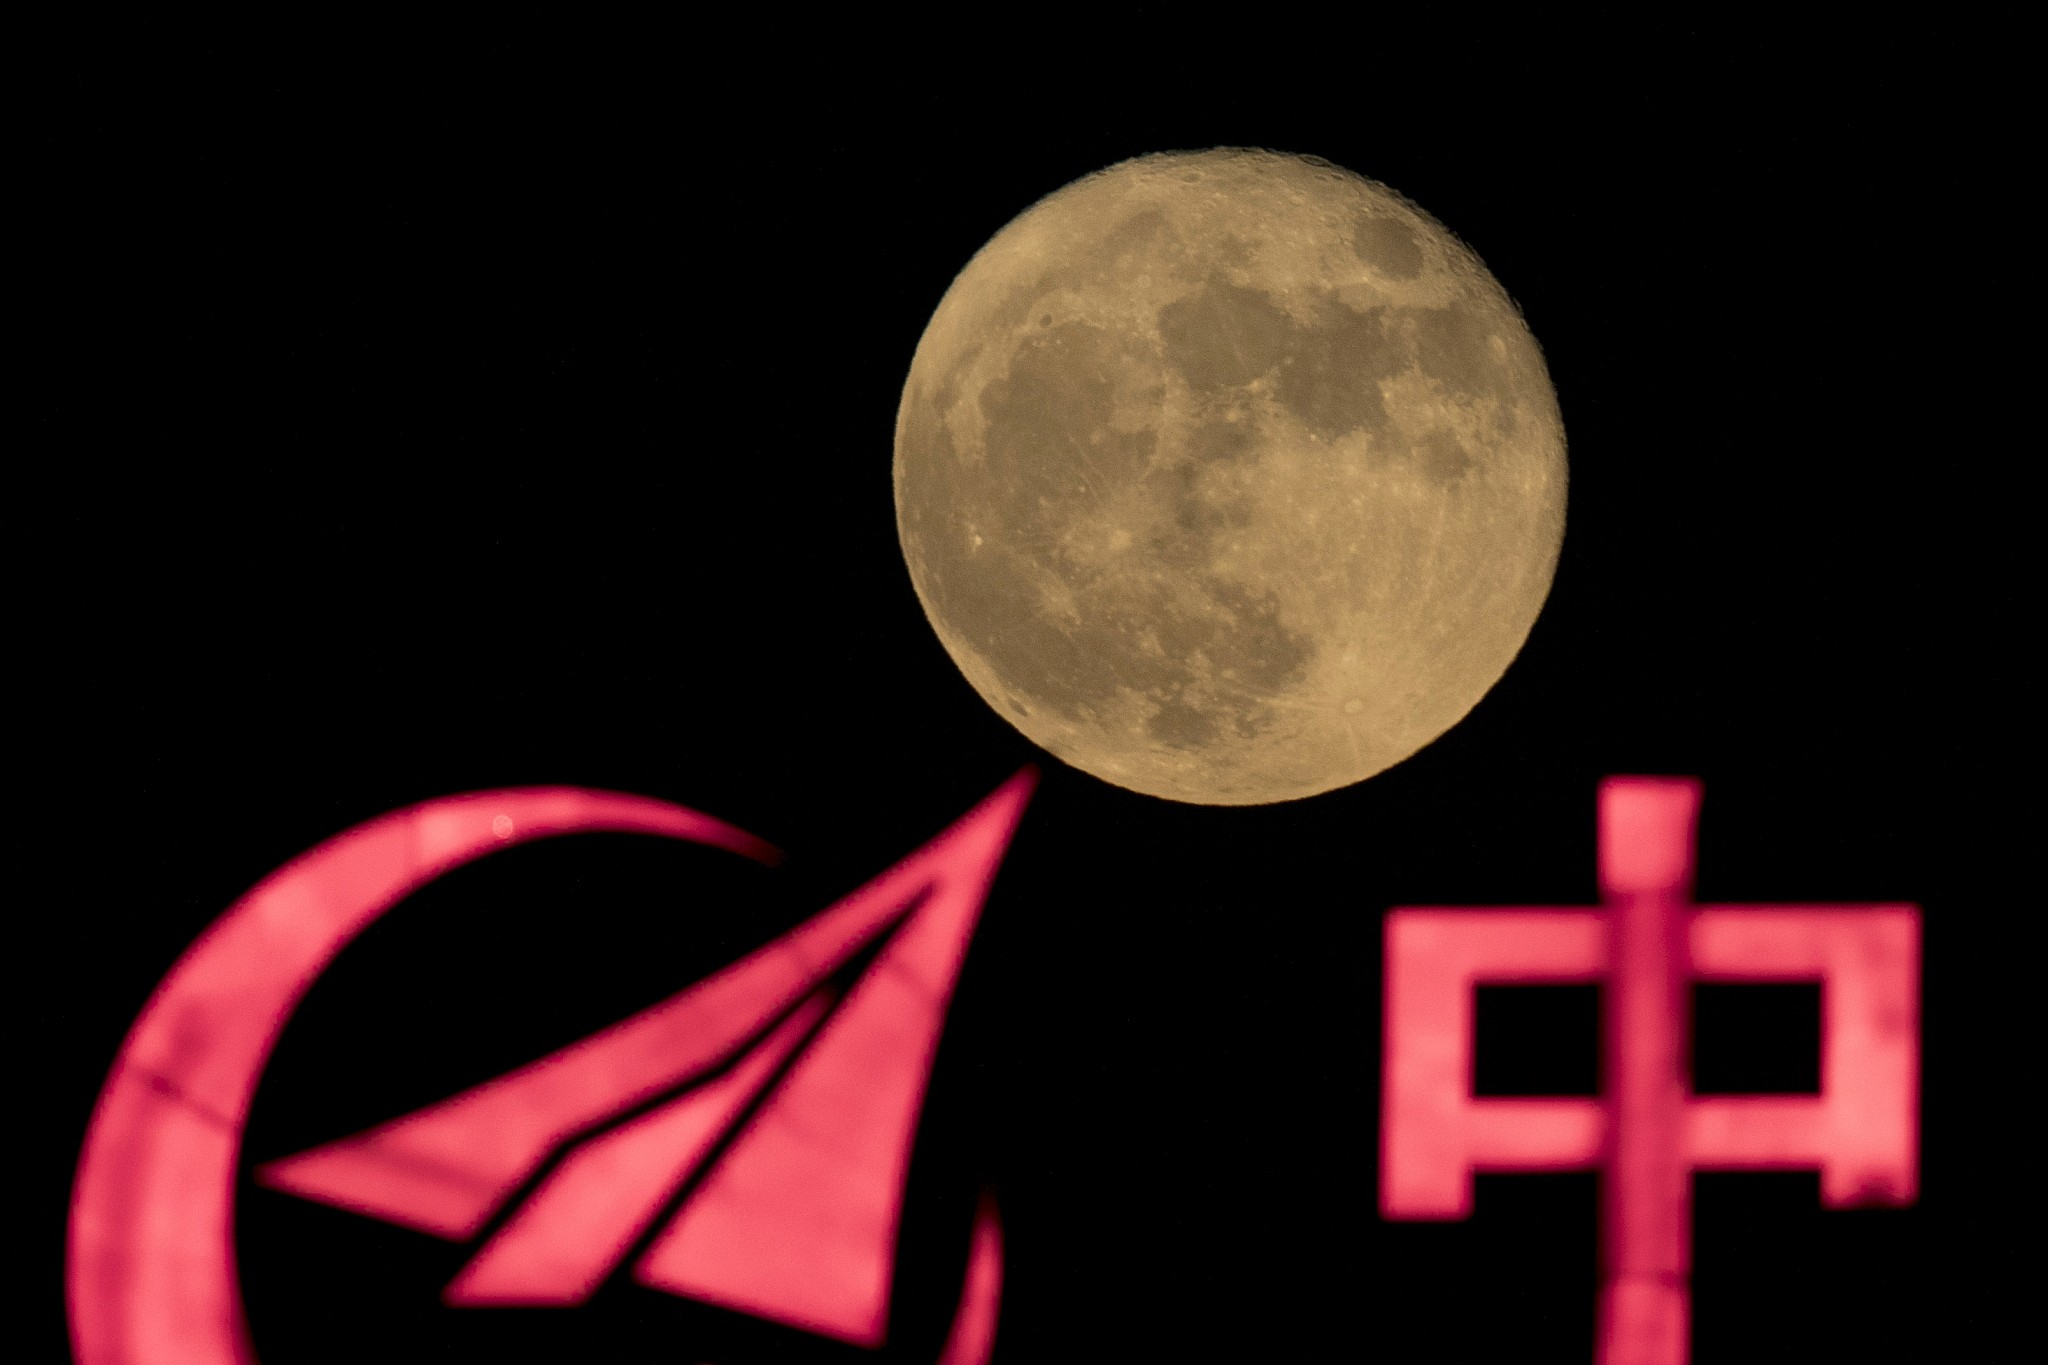 15 2016 the supermoon rises over a logo for AVIC or Aviation Industry Corp a state owned enterprise involved in China's manned space mission in Beijing. China vowed Tuesday Dec 27 2016 to speed up the developme